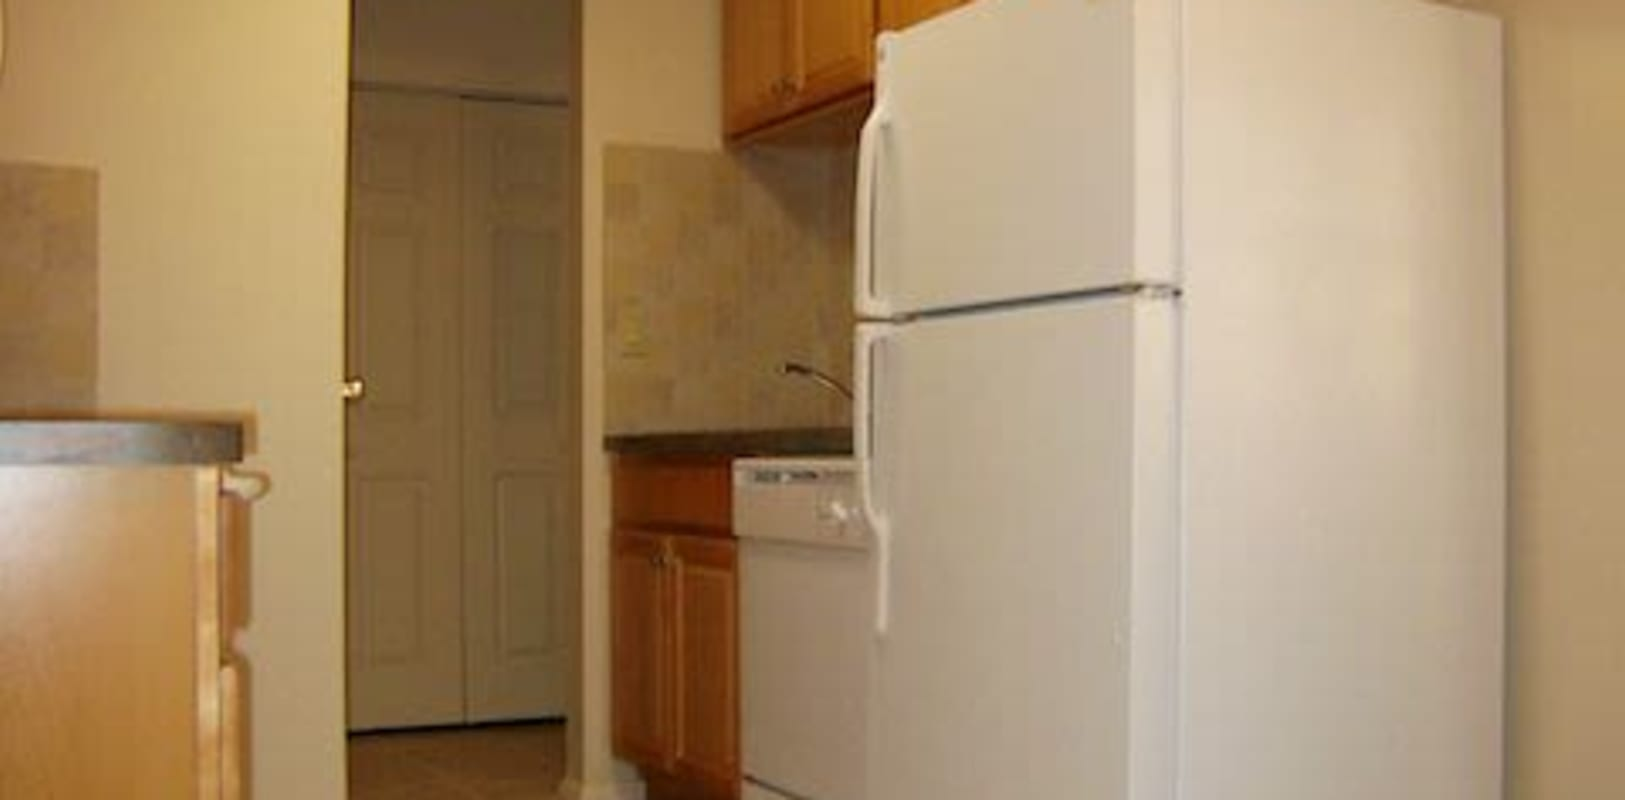 Kitchen with wooden cabinets and a white fridge at Pine Crest Apartments in Milford, New Jersey